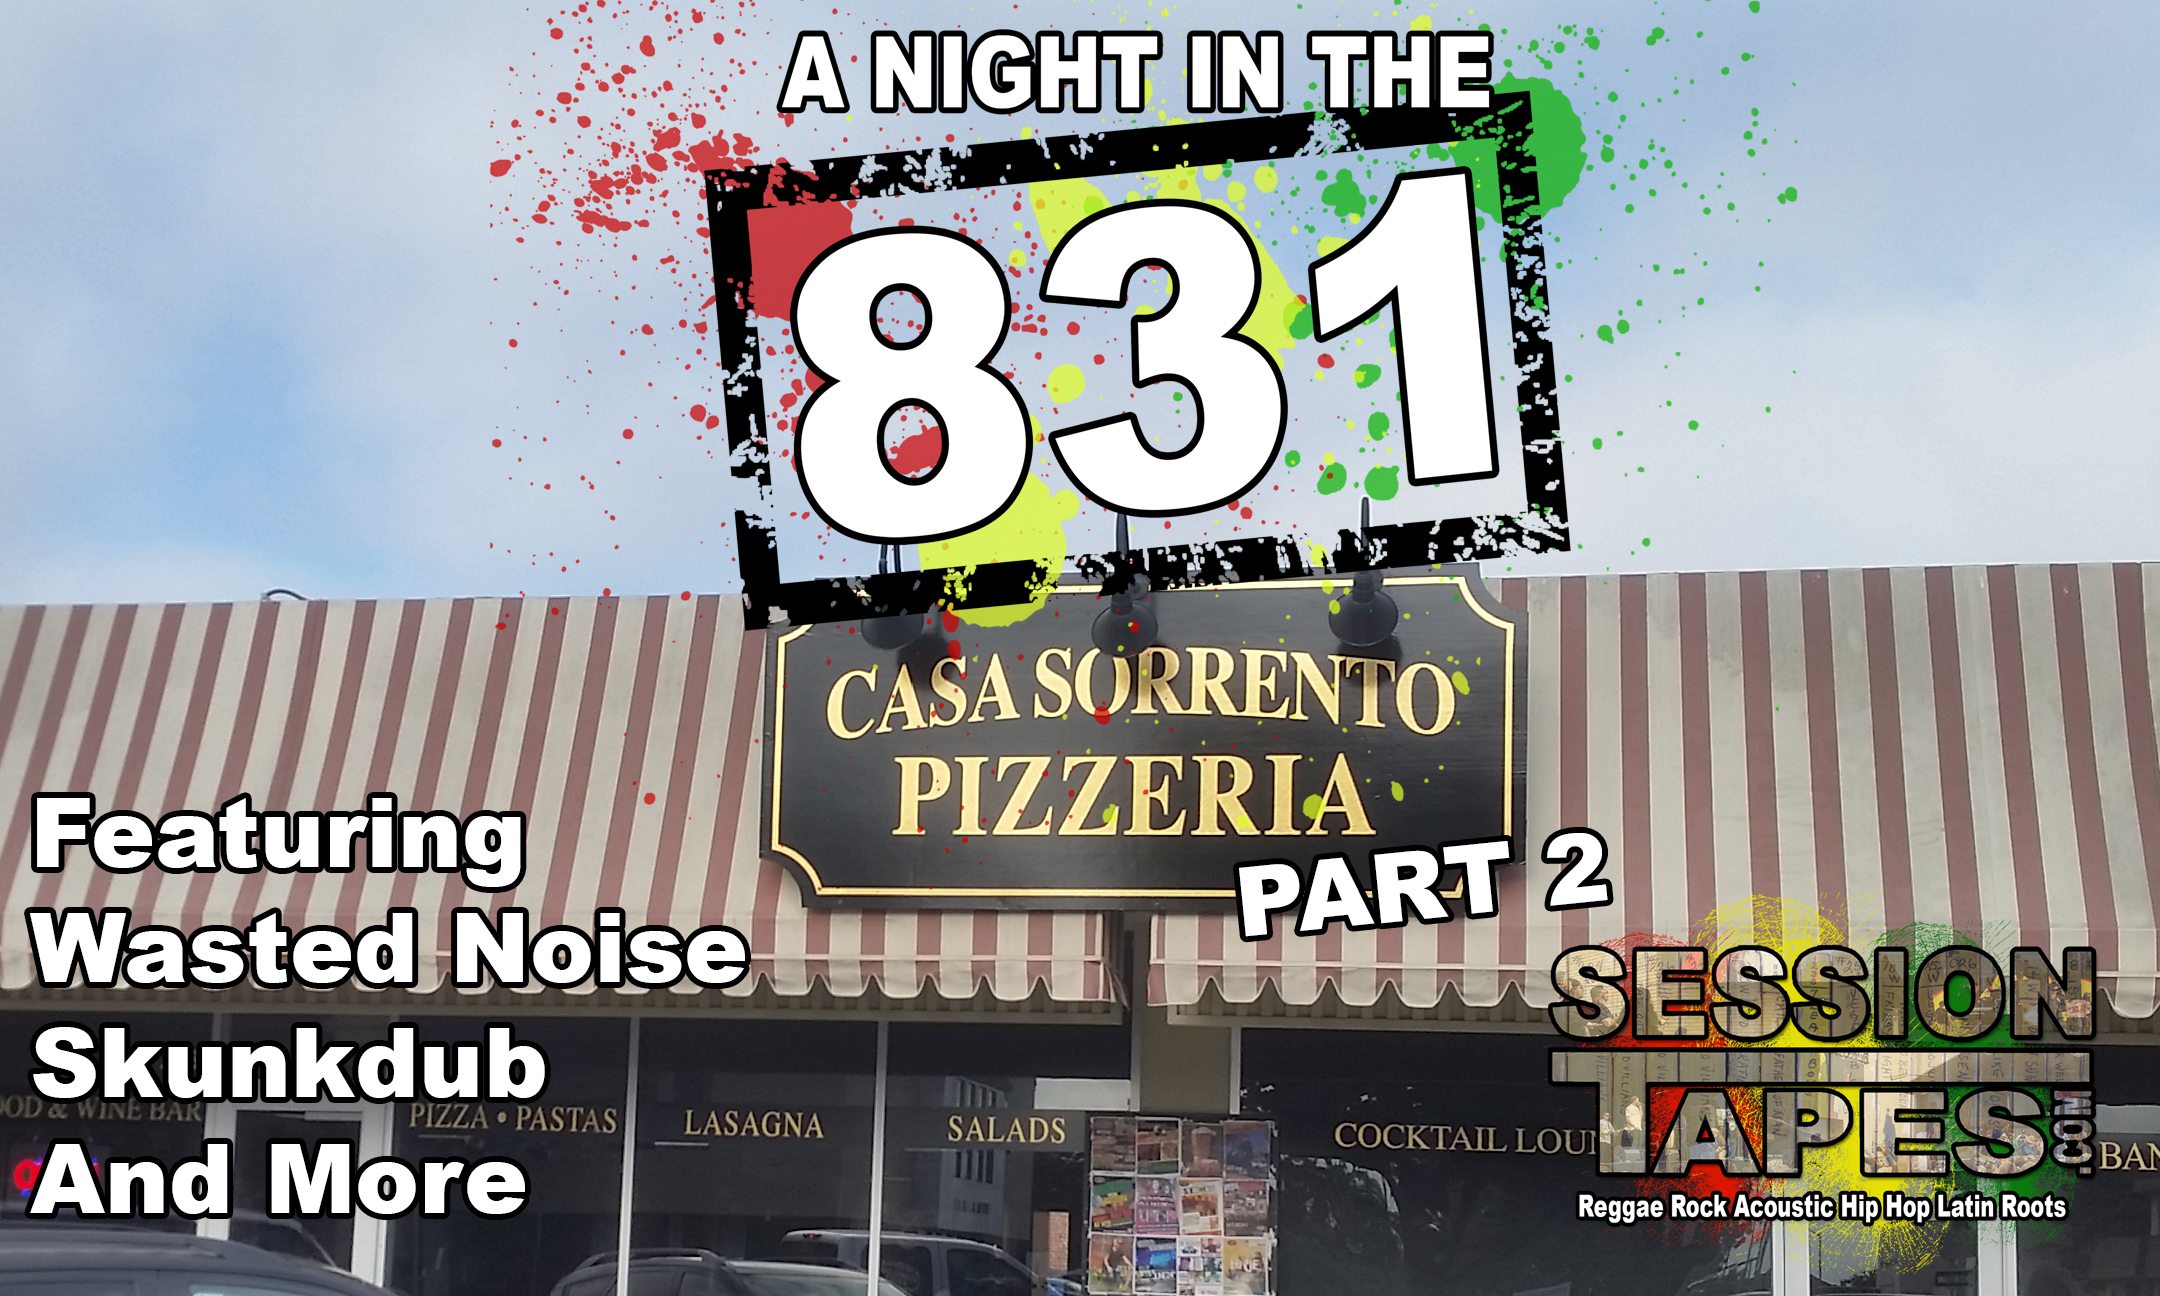 ANIT831: Casa Sorrento Part 2 (Wasted Noise, Skunkdub, Dread I Knights, OAC, WGS, Natural Revolution)